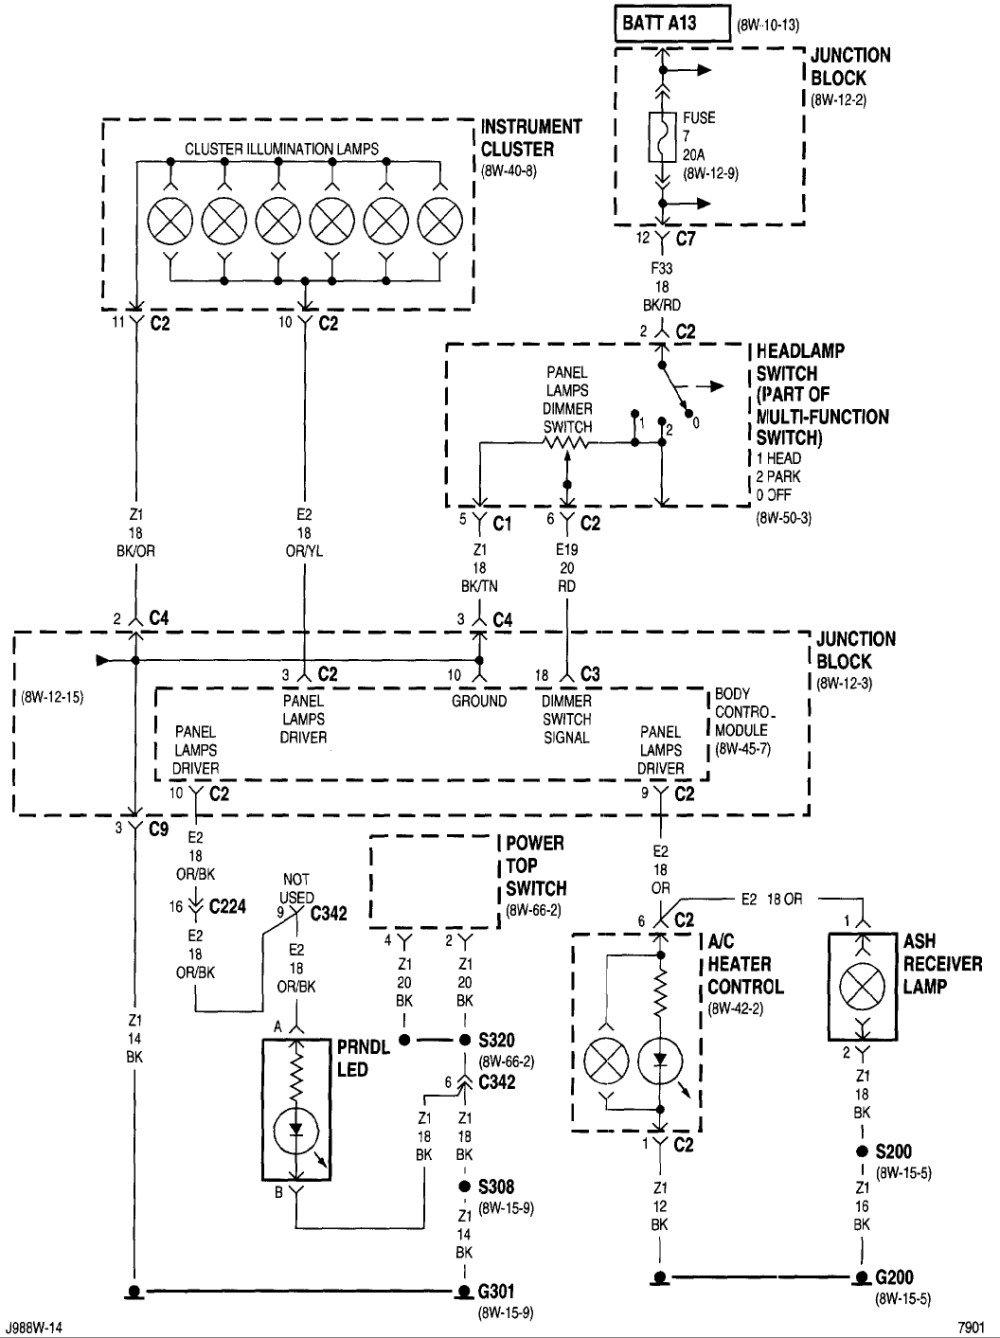 medium resolution of 2007 chrysler sebring wiring diagram 2007 chrysler sebring wiring diagram 2007 pt cruiser fuse box